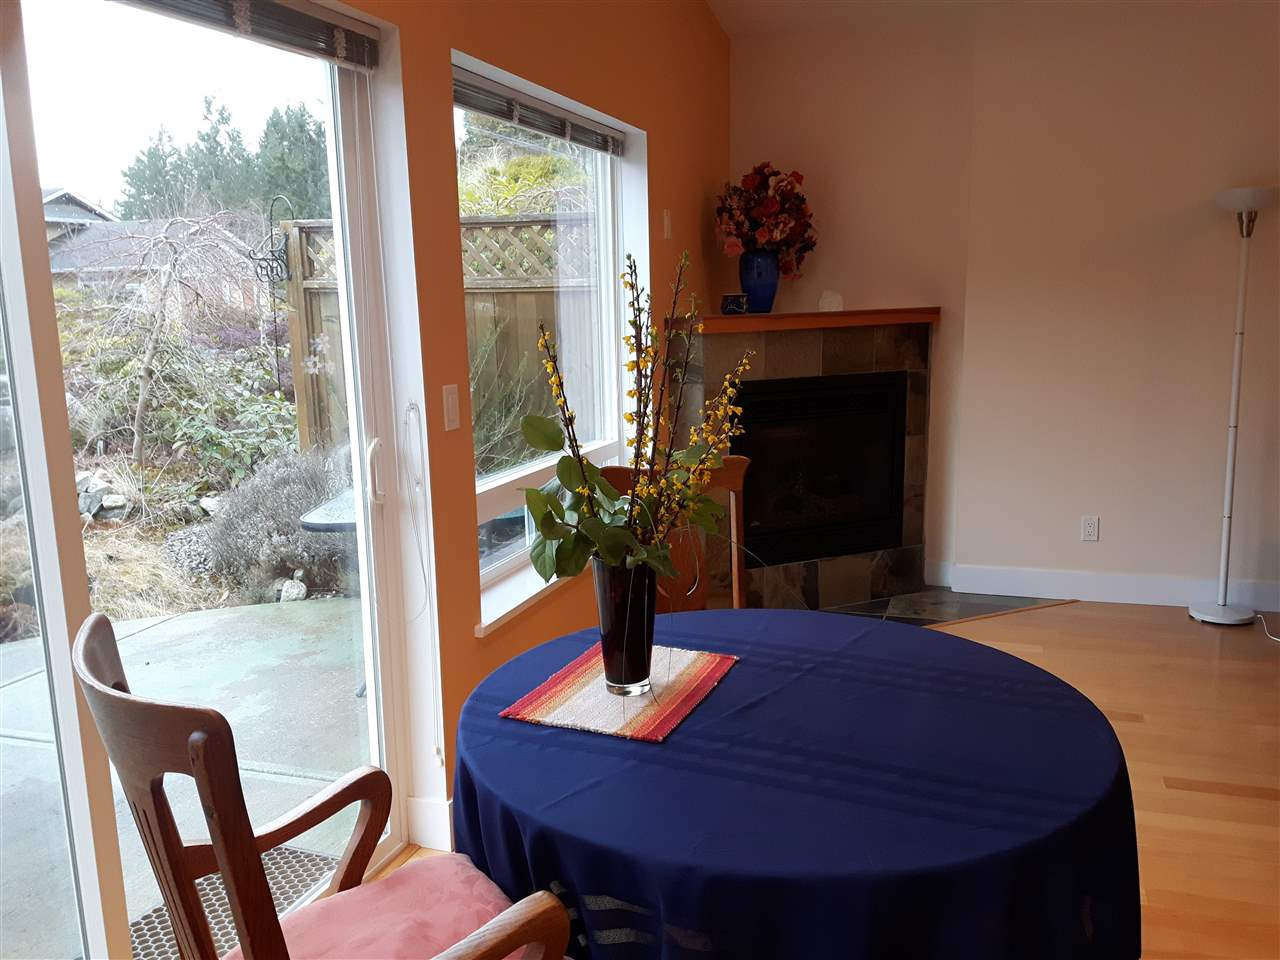 "Photo 11: Photos: 8 12710 LAGOON Road in Pender Harbour: Pender Harbour Egmont House 1/2 Duplex for sale in ""LILY LAKE"" (Sunshine Coast)  : MLS® # R2243902"